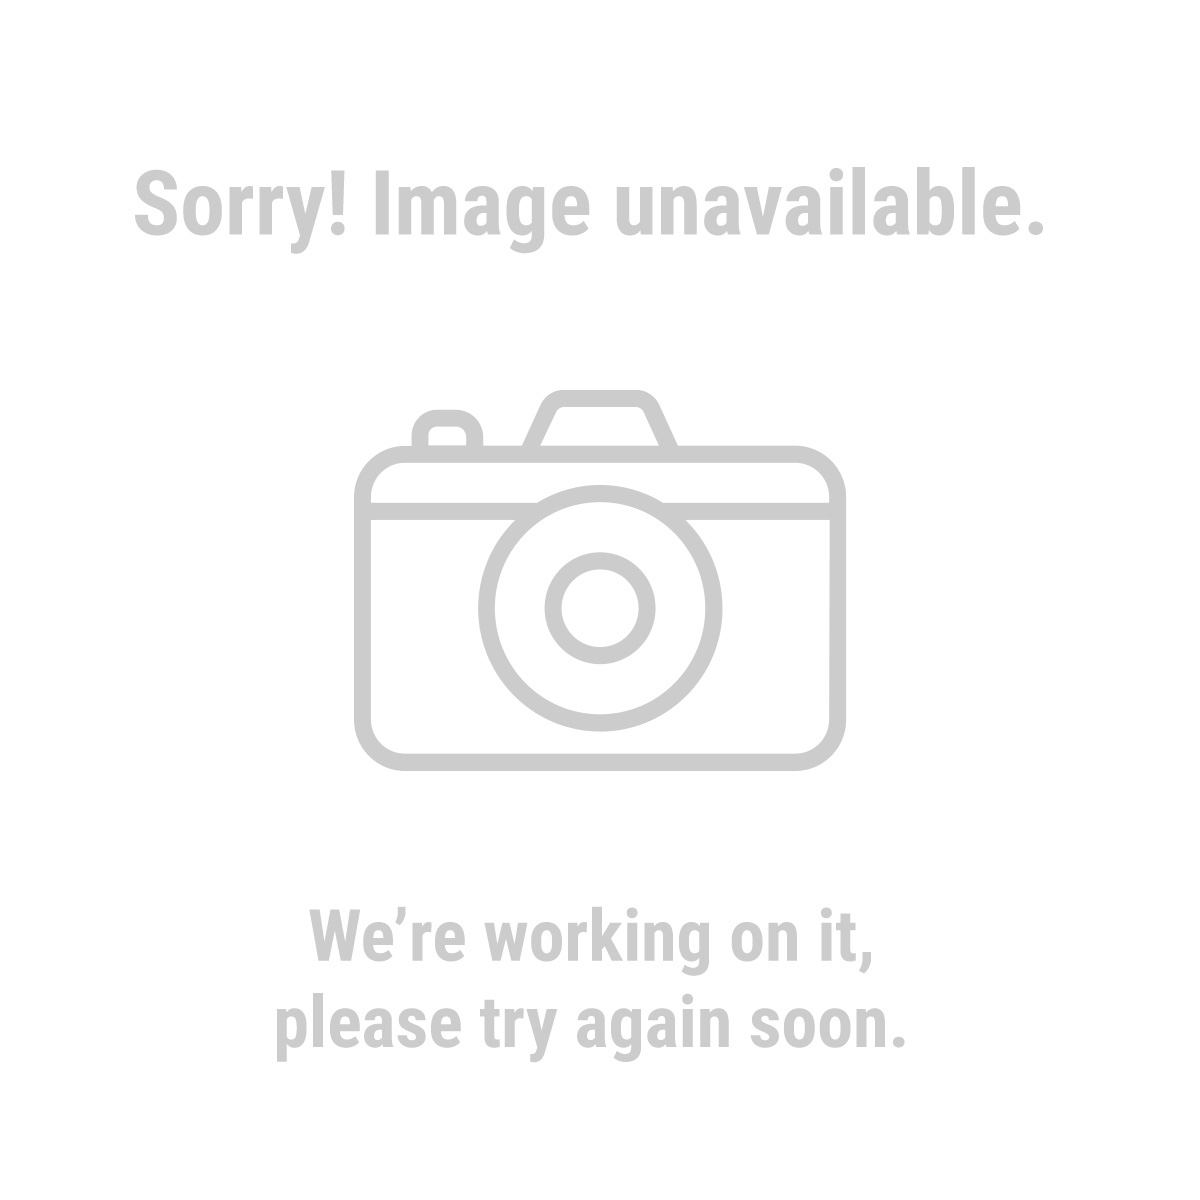 Drill Master 41312 4 Piece Large Diameter Spade Bit Set